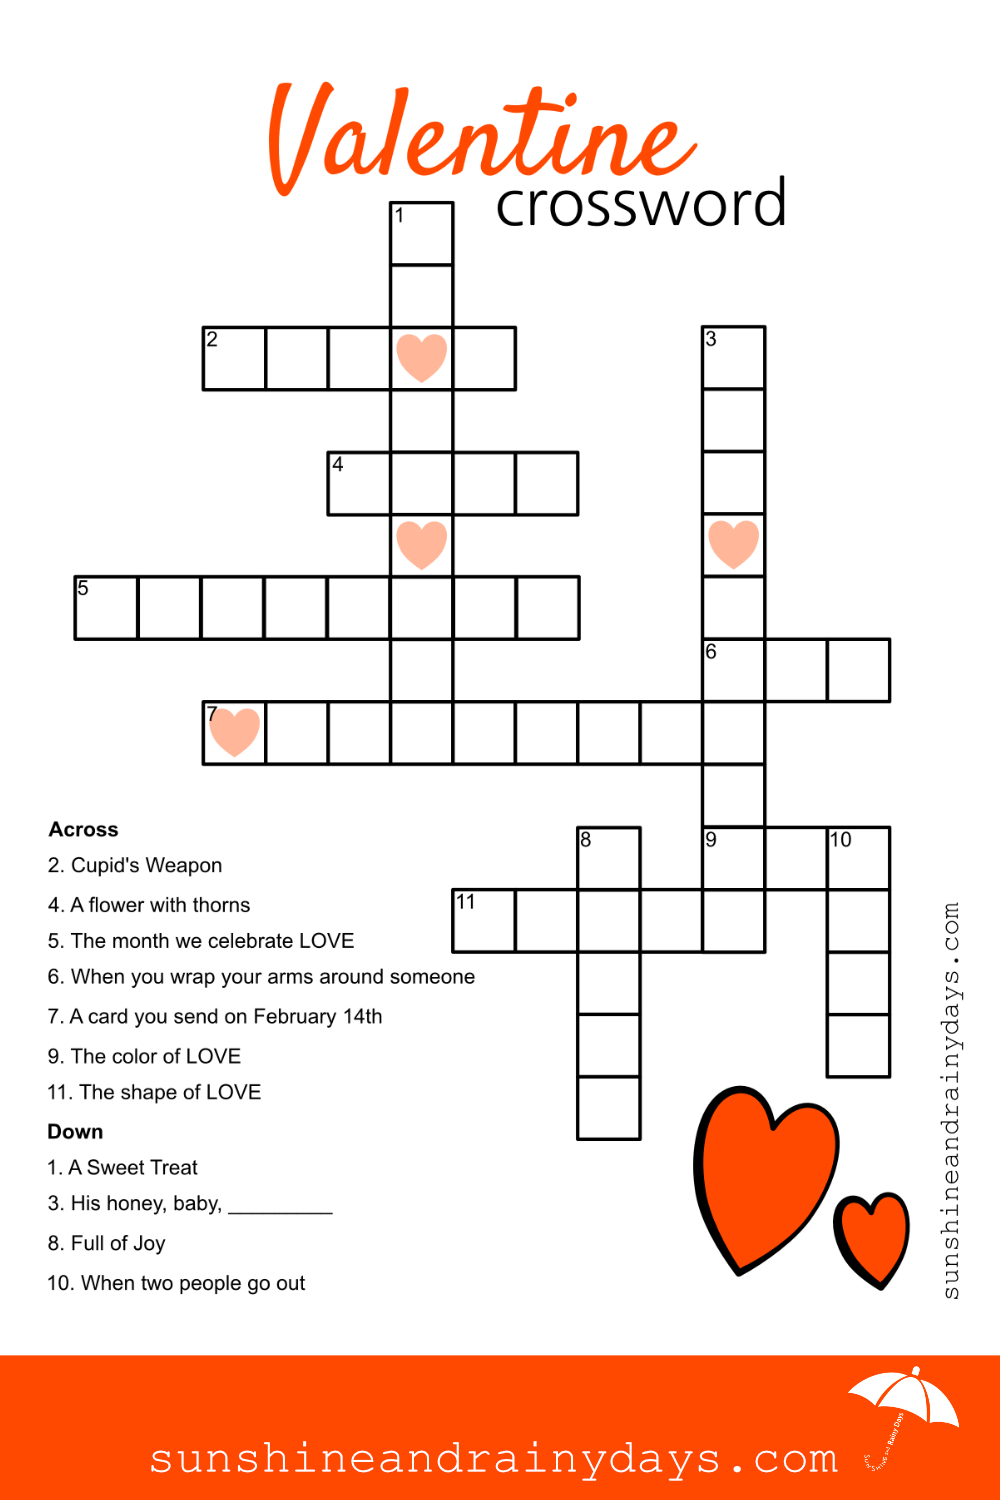 Valentine Crossword Puzzle - Sunshine And Rainy Days - Free Printable Valentine Crossword Puzzles